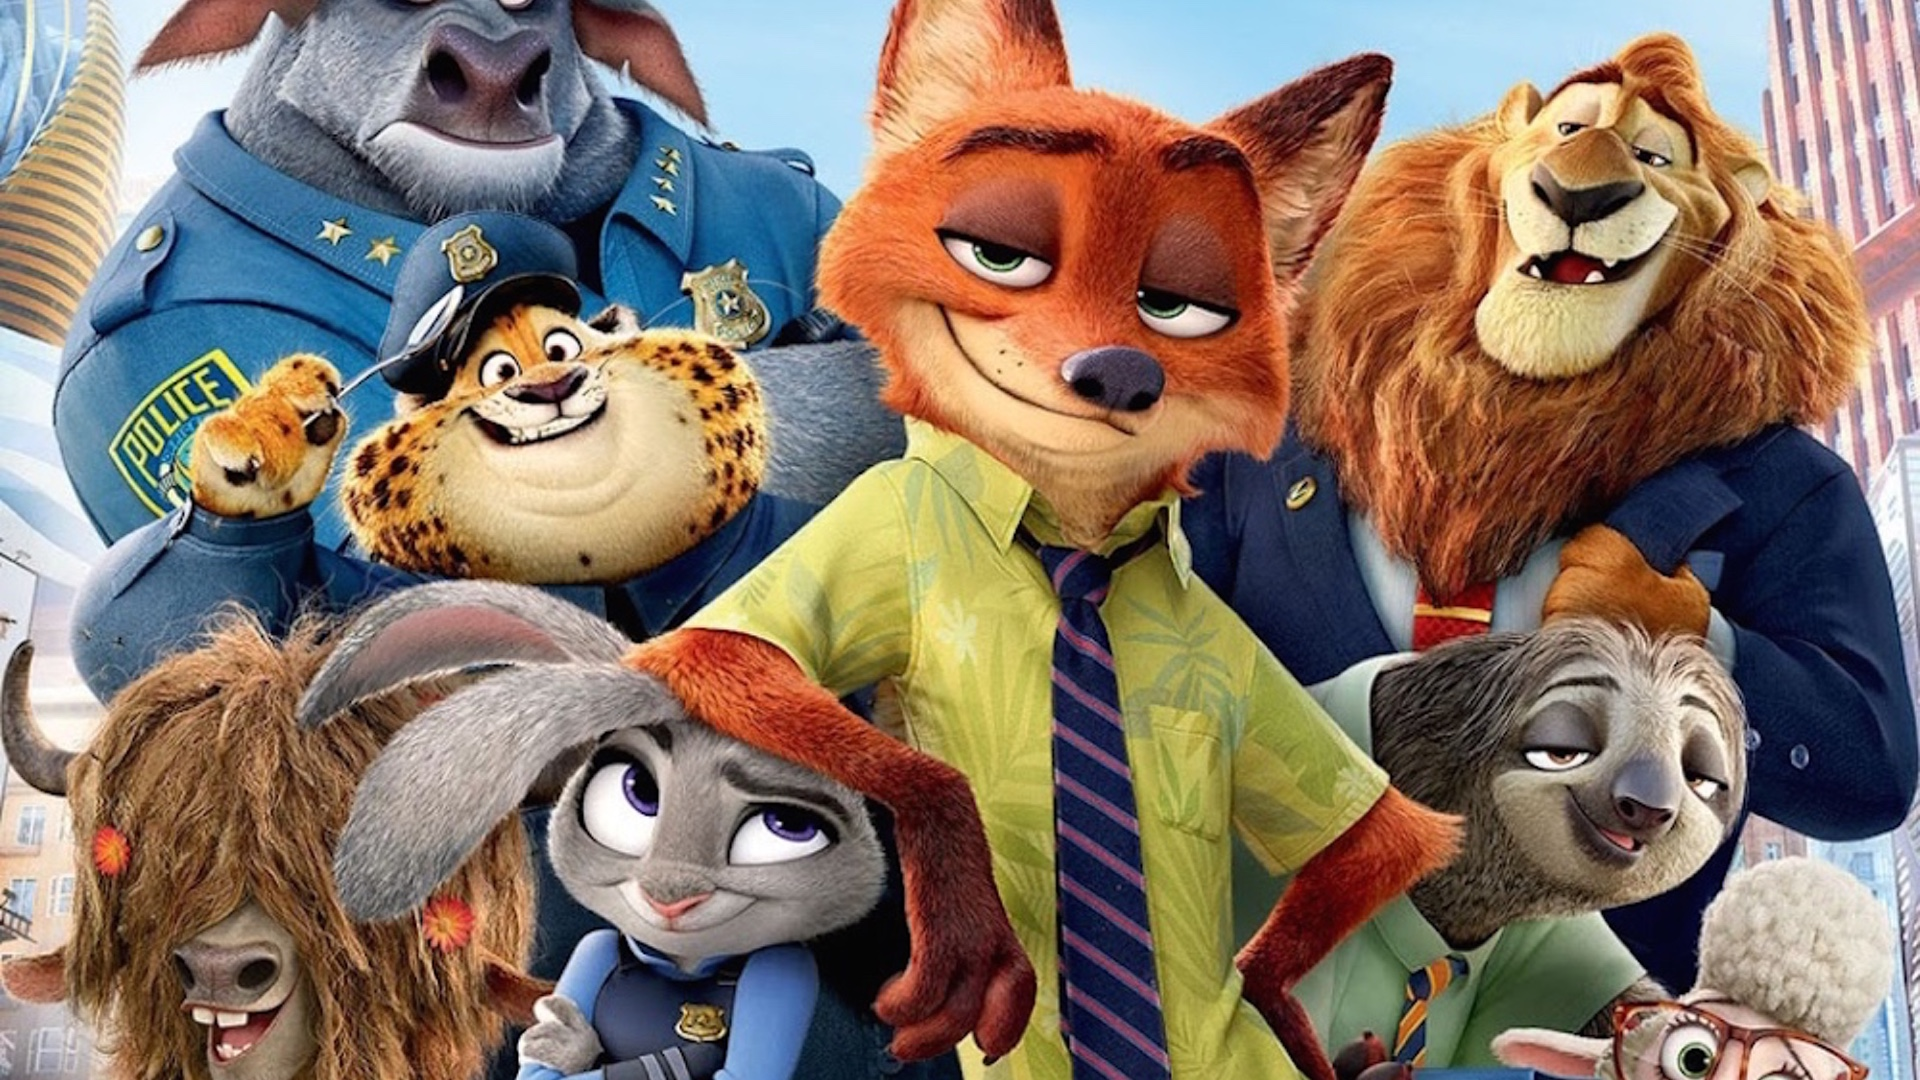 disney-animation-is-developing-two-more-zootopia-films-social.jpg